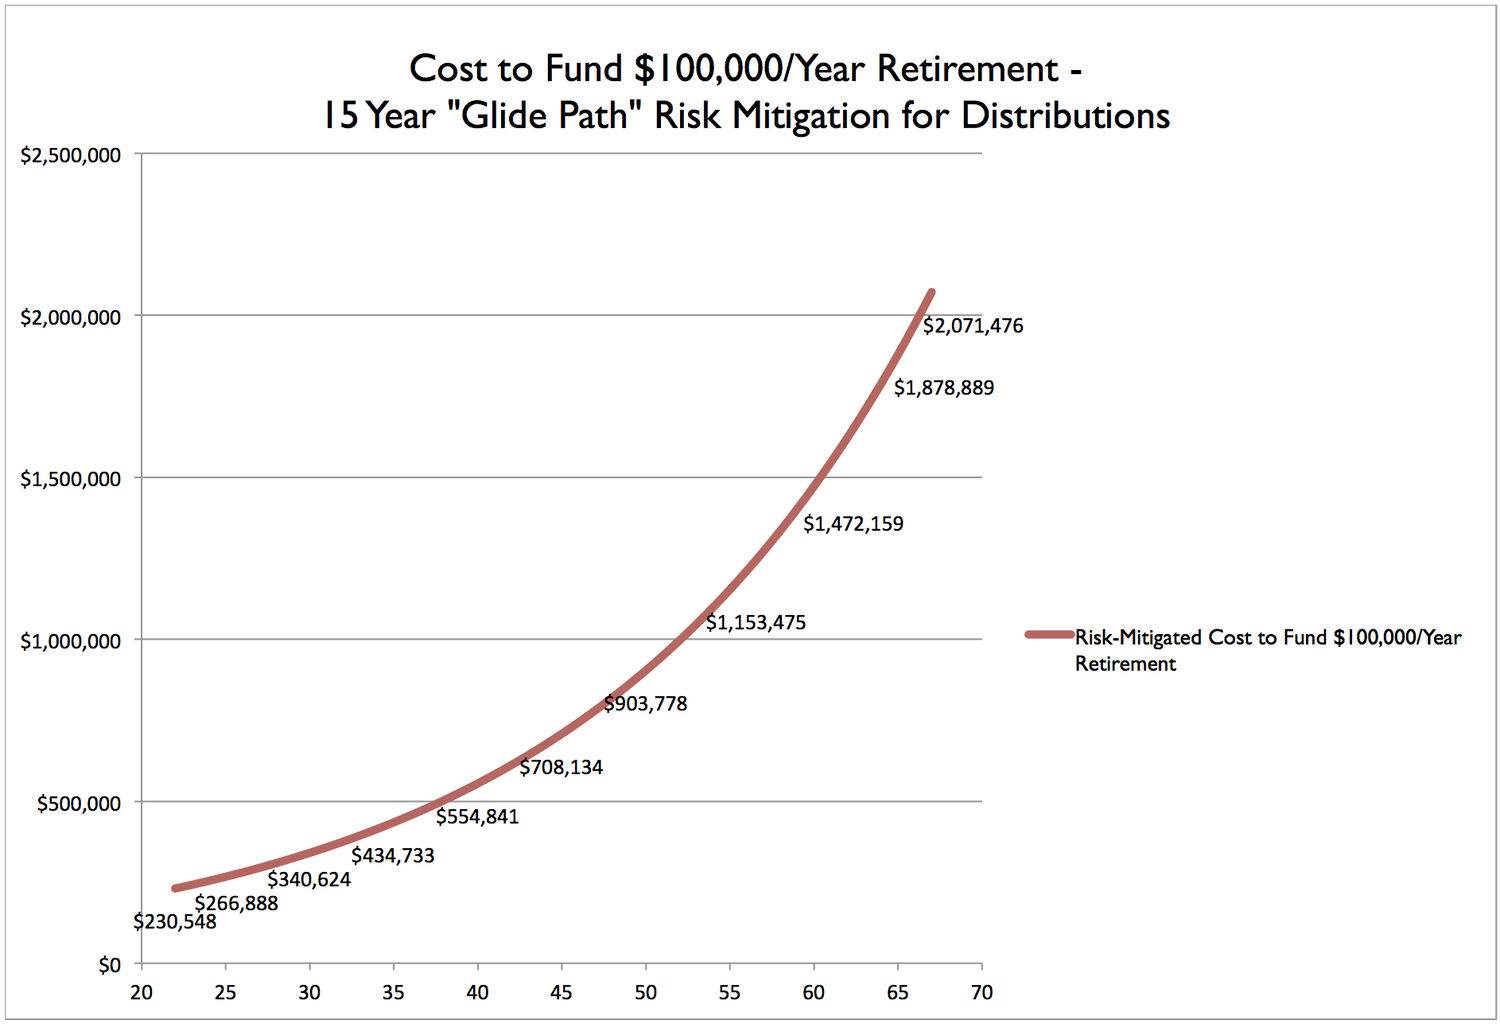 Risk-Mitigated Retirement Funding Cost Chart